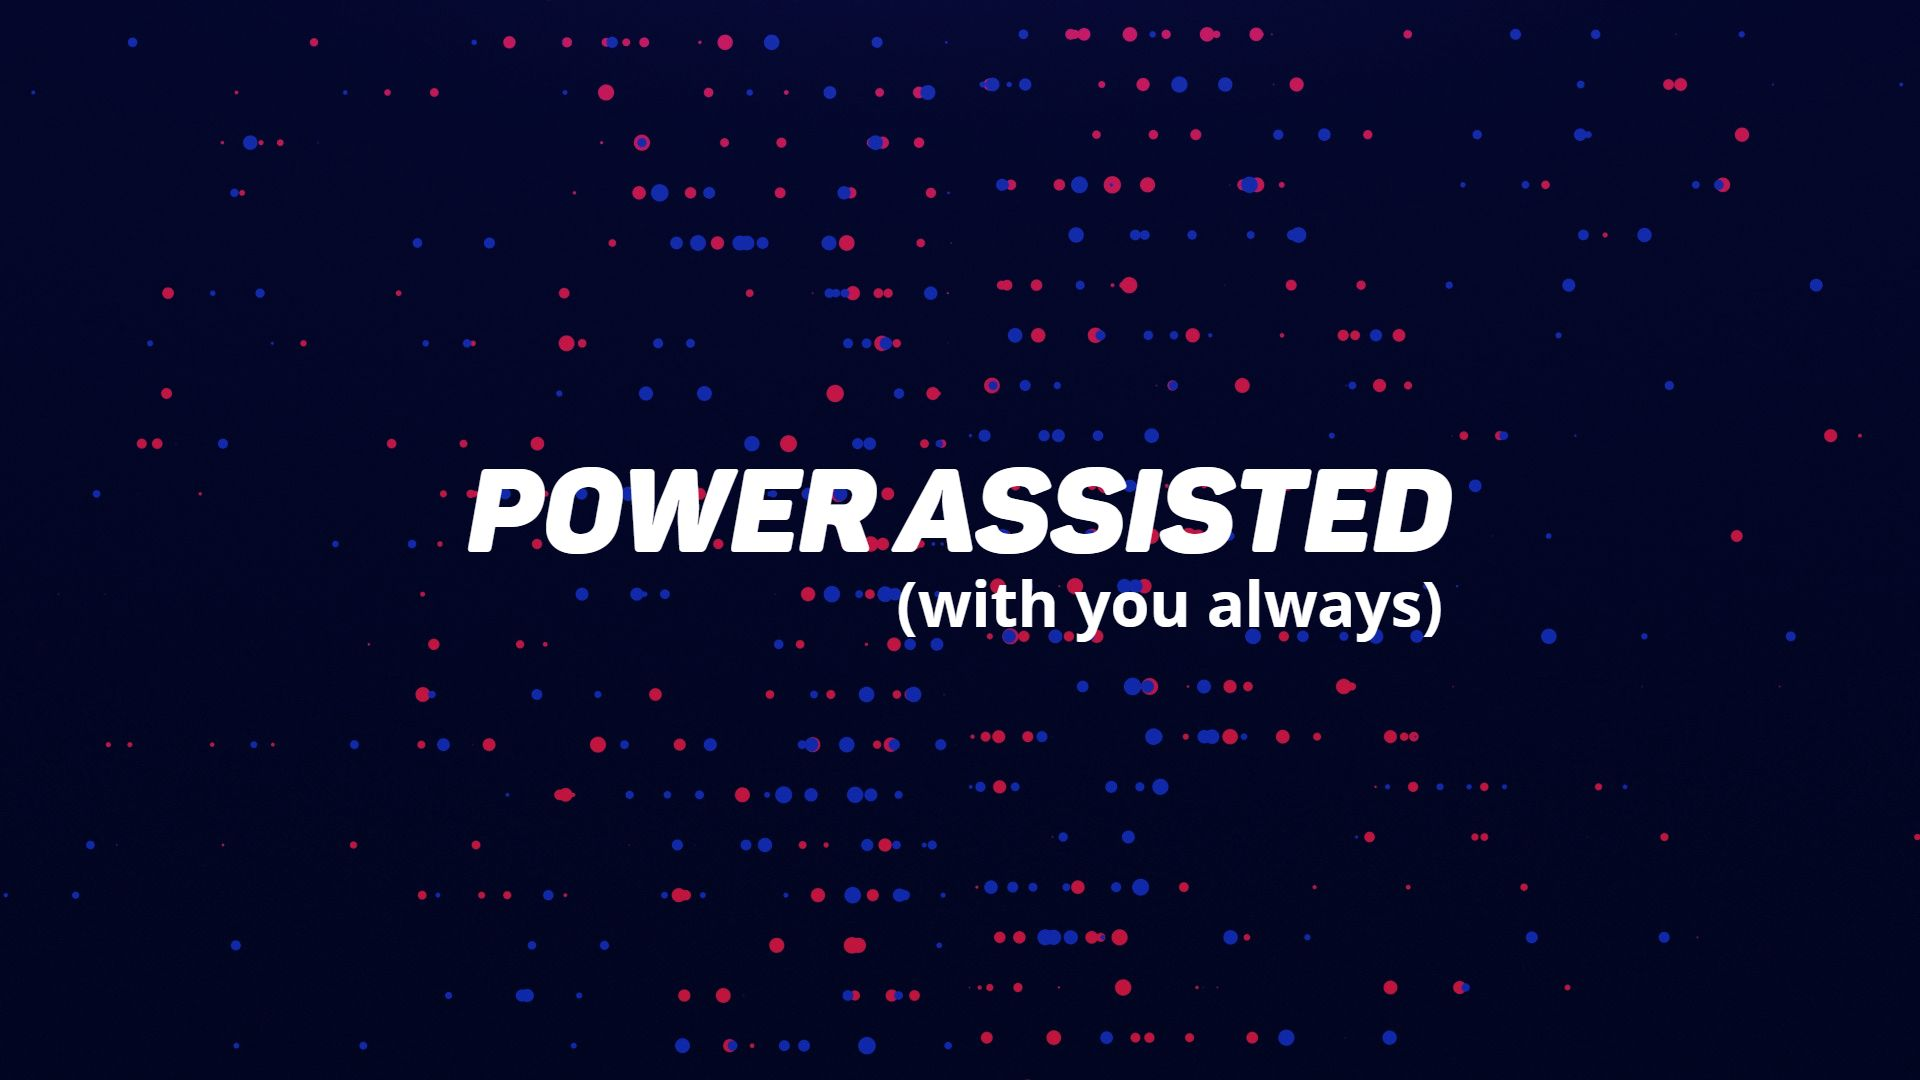 Power Assisted (with you always)